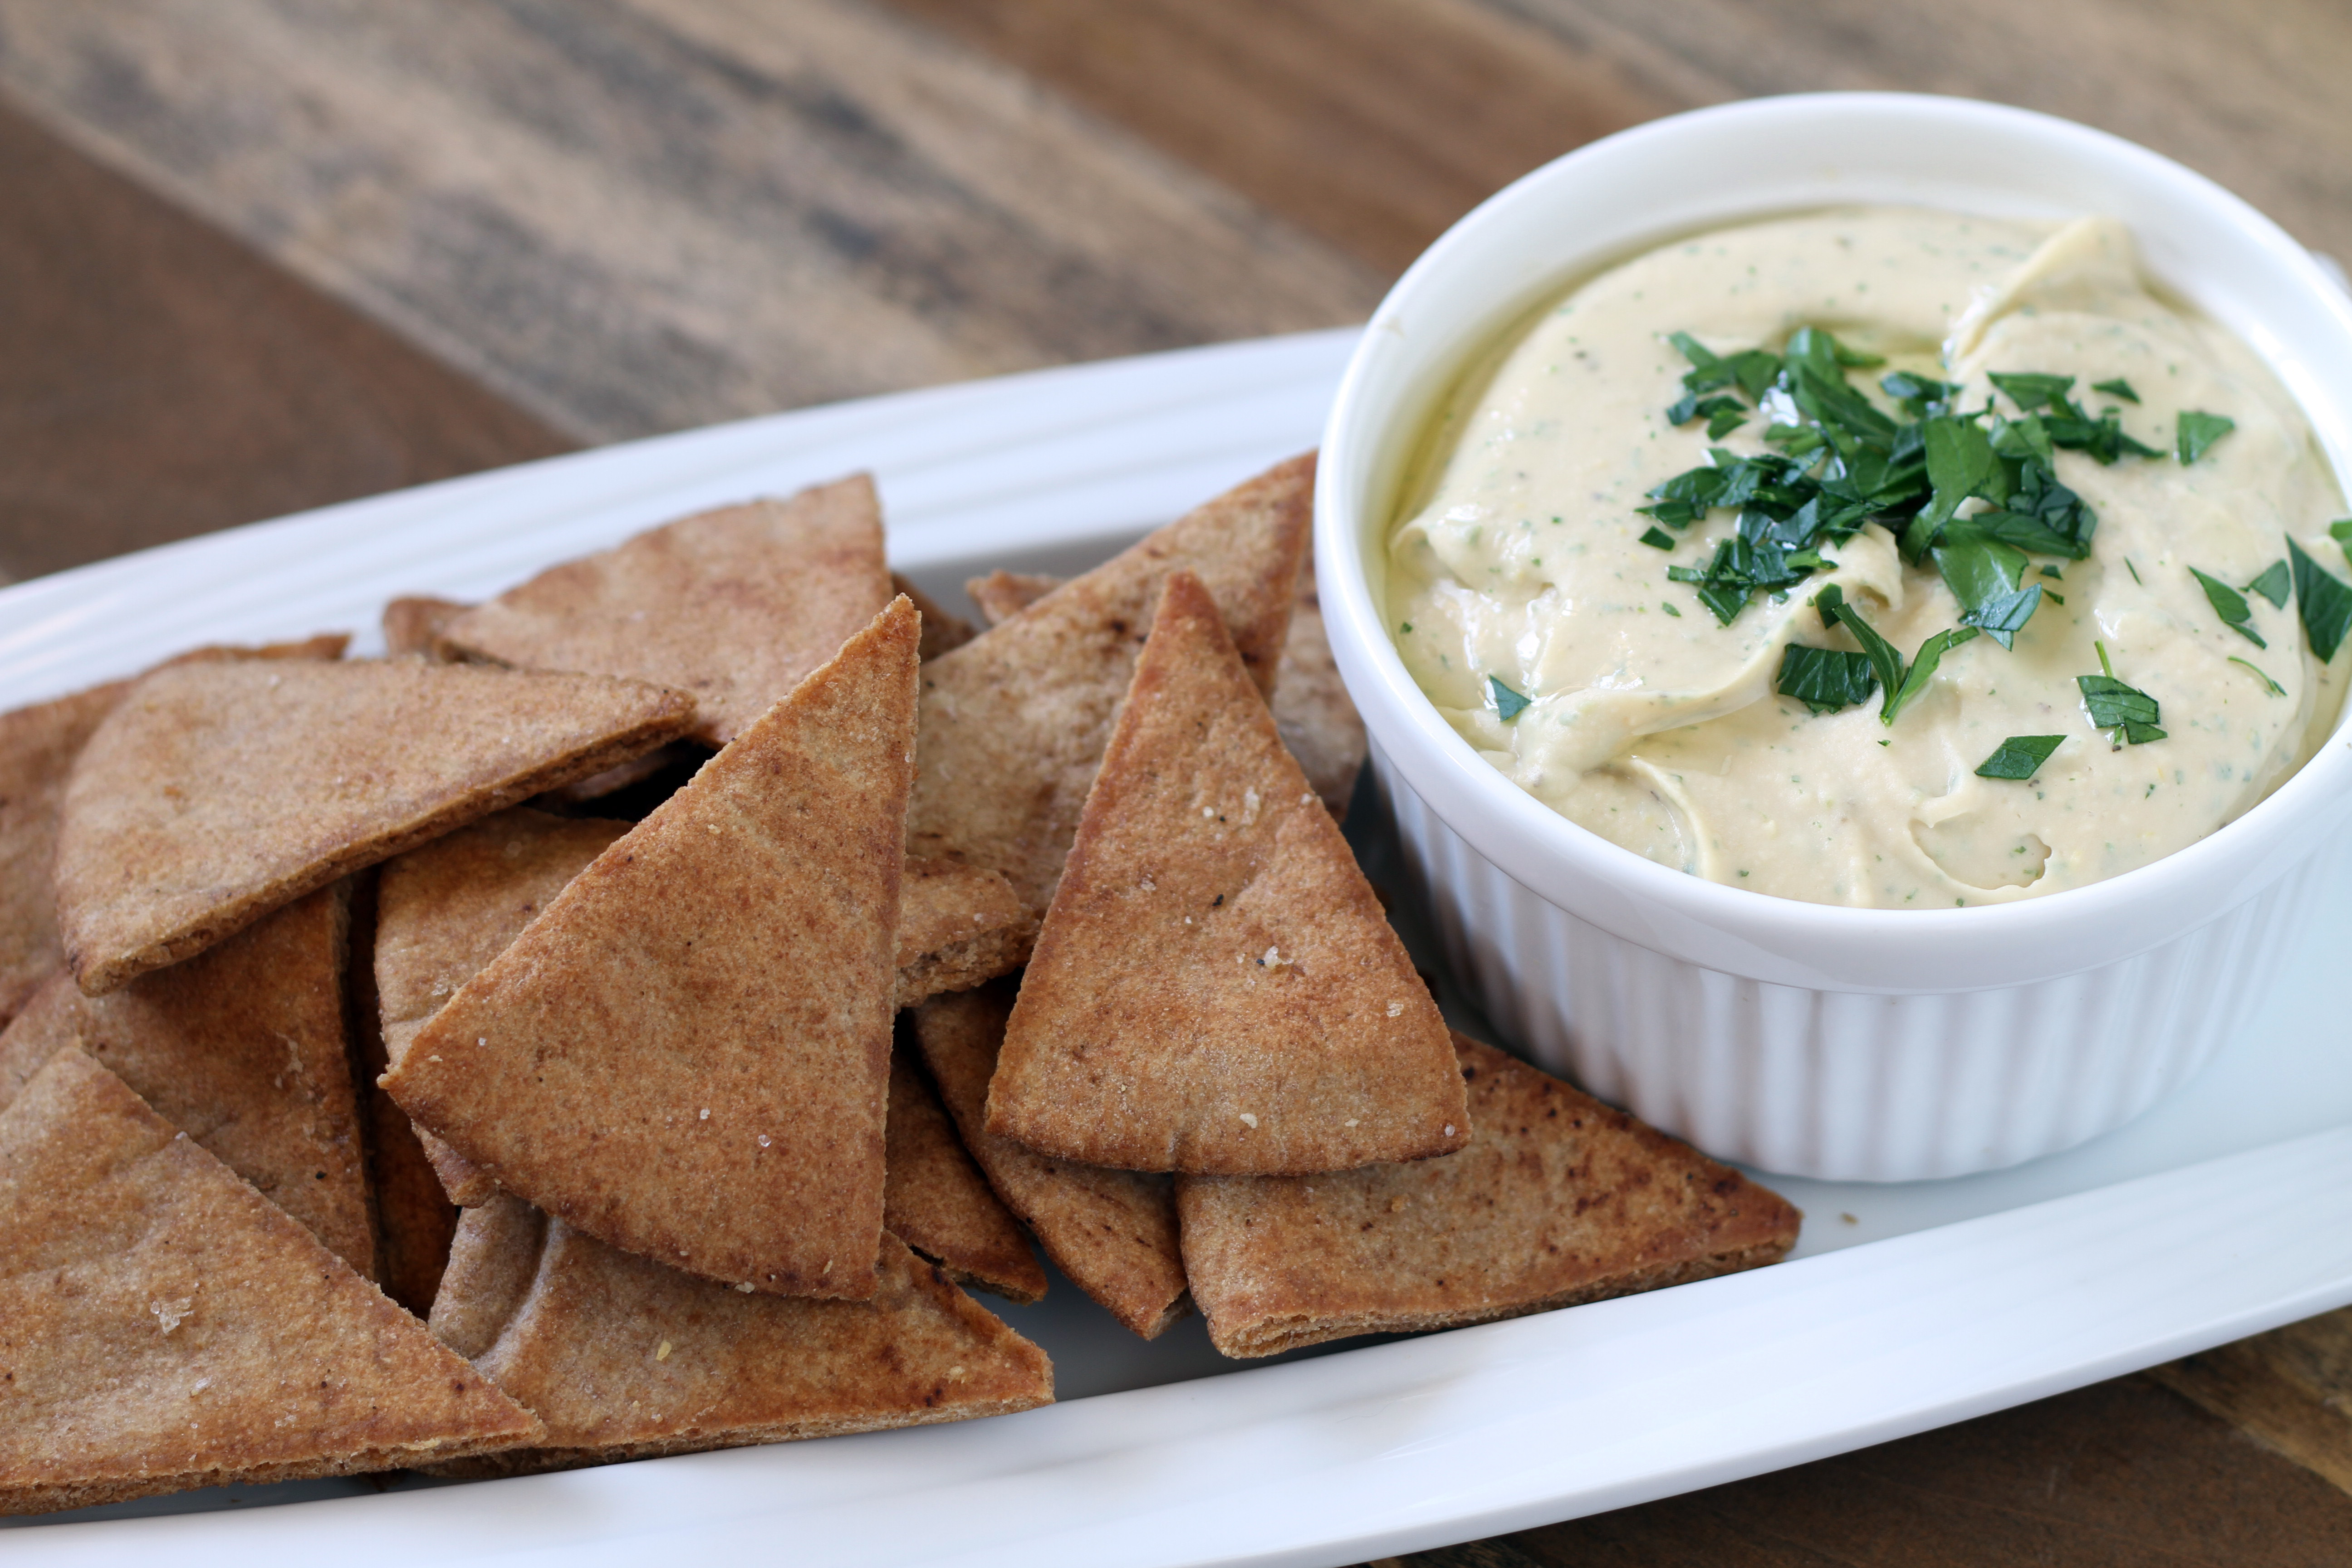 Roasted Garlic & White Bean Dip